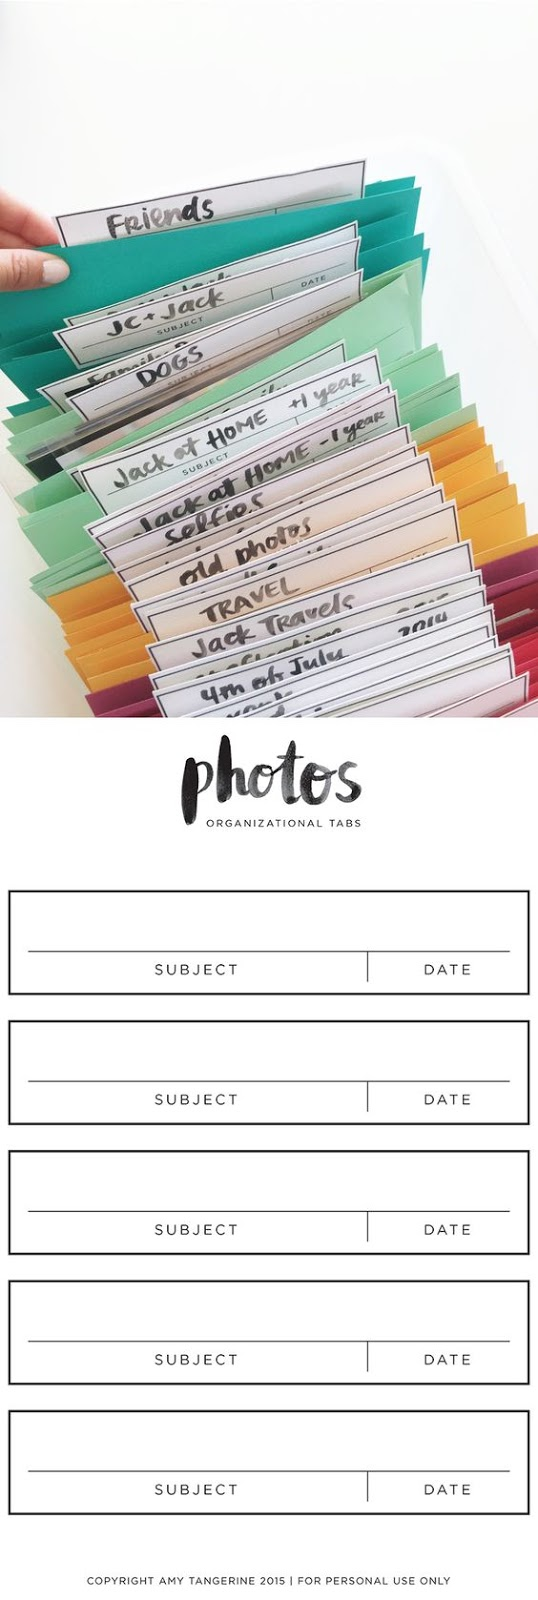 Photo organizer free printable